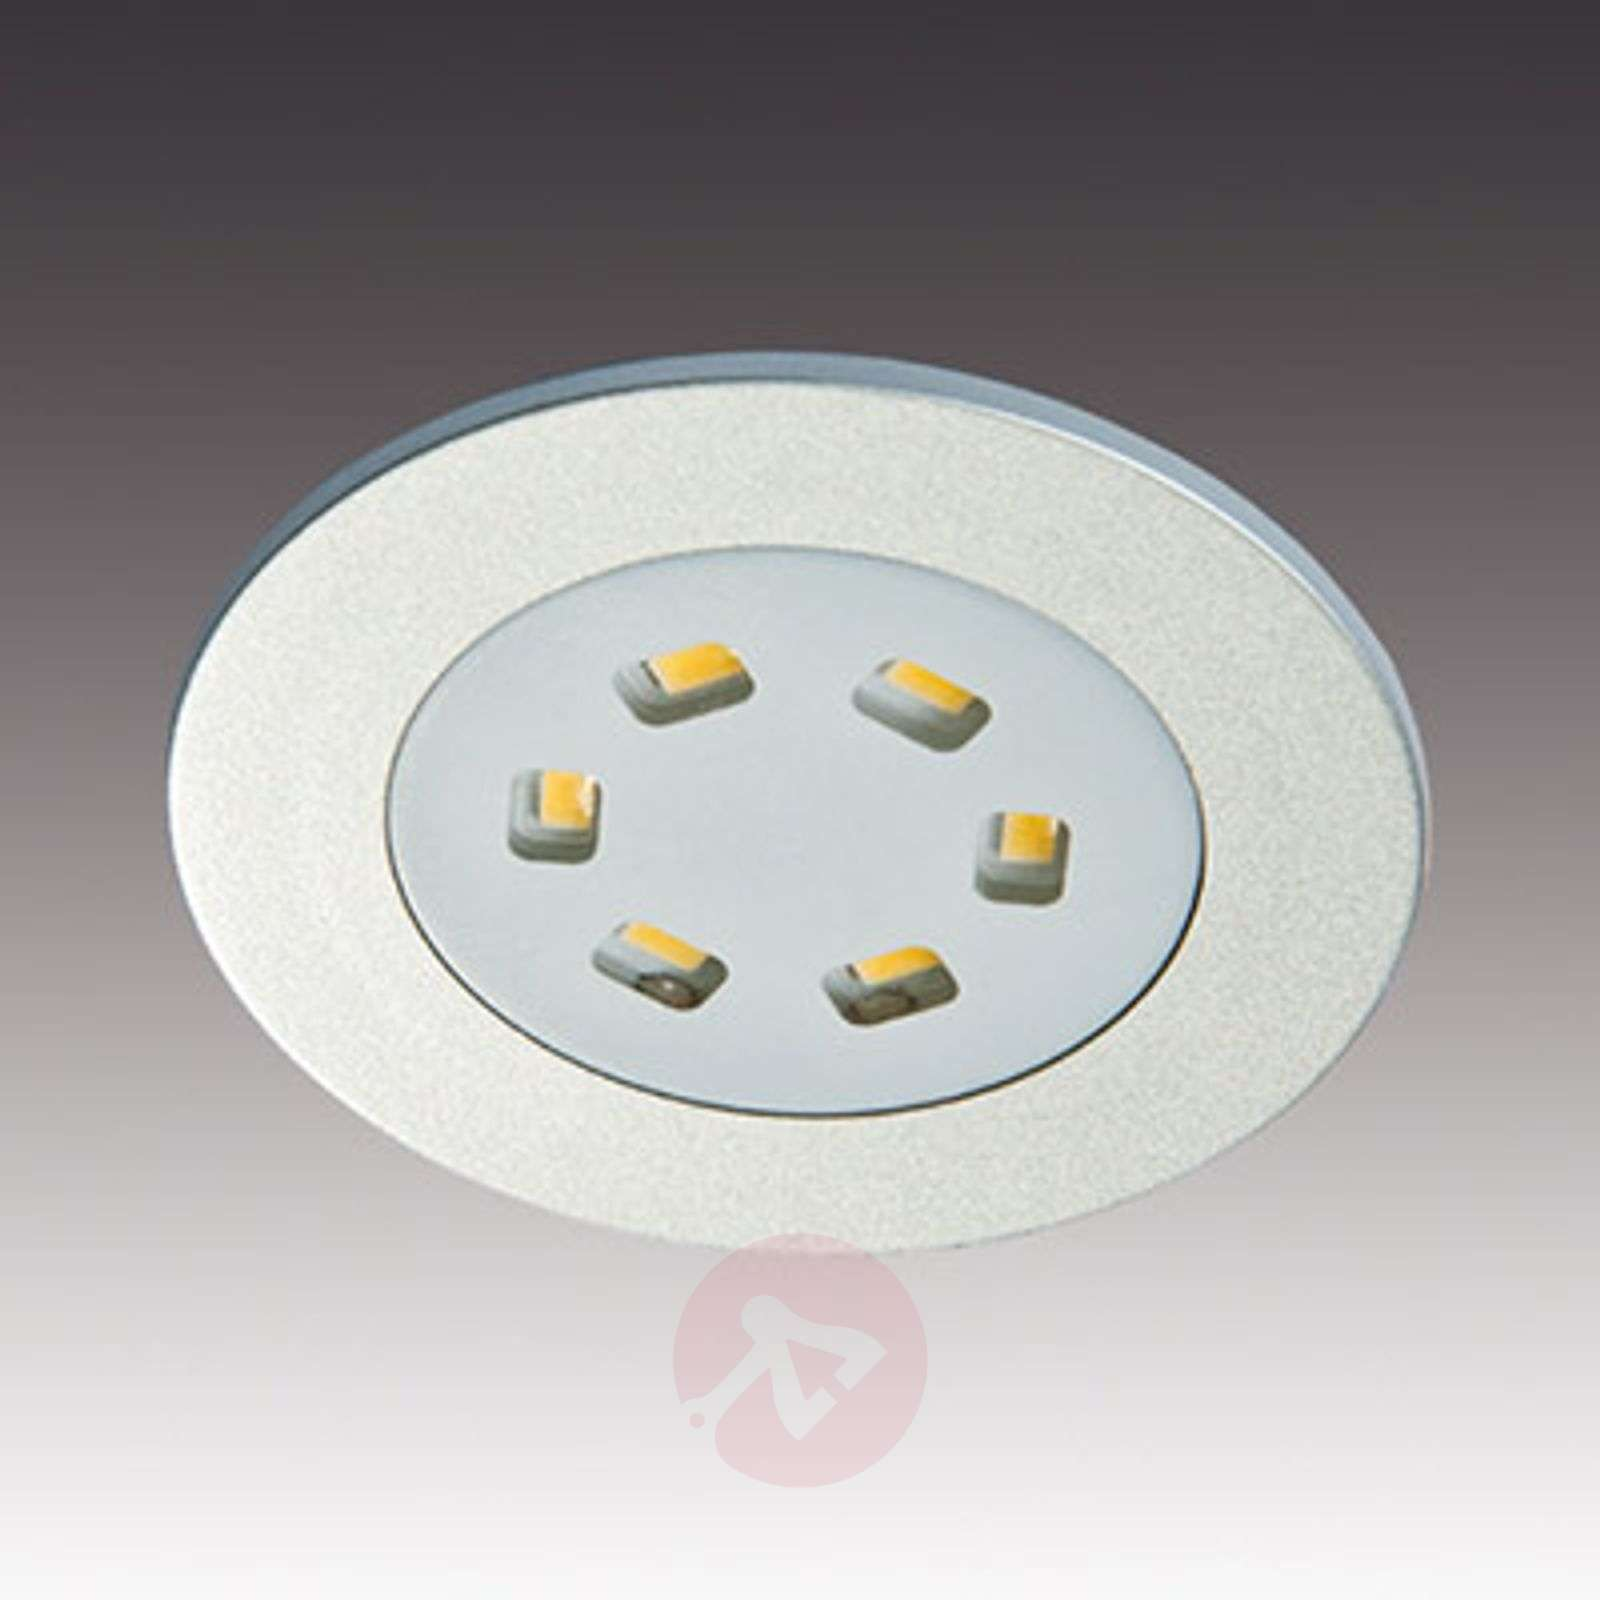 Spot encastrable plat LED R 55-4514223-01